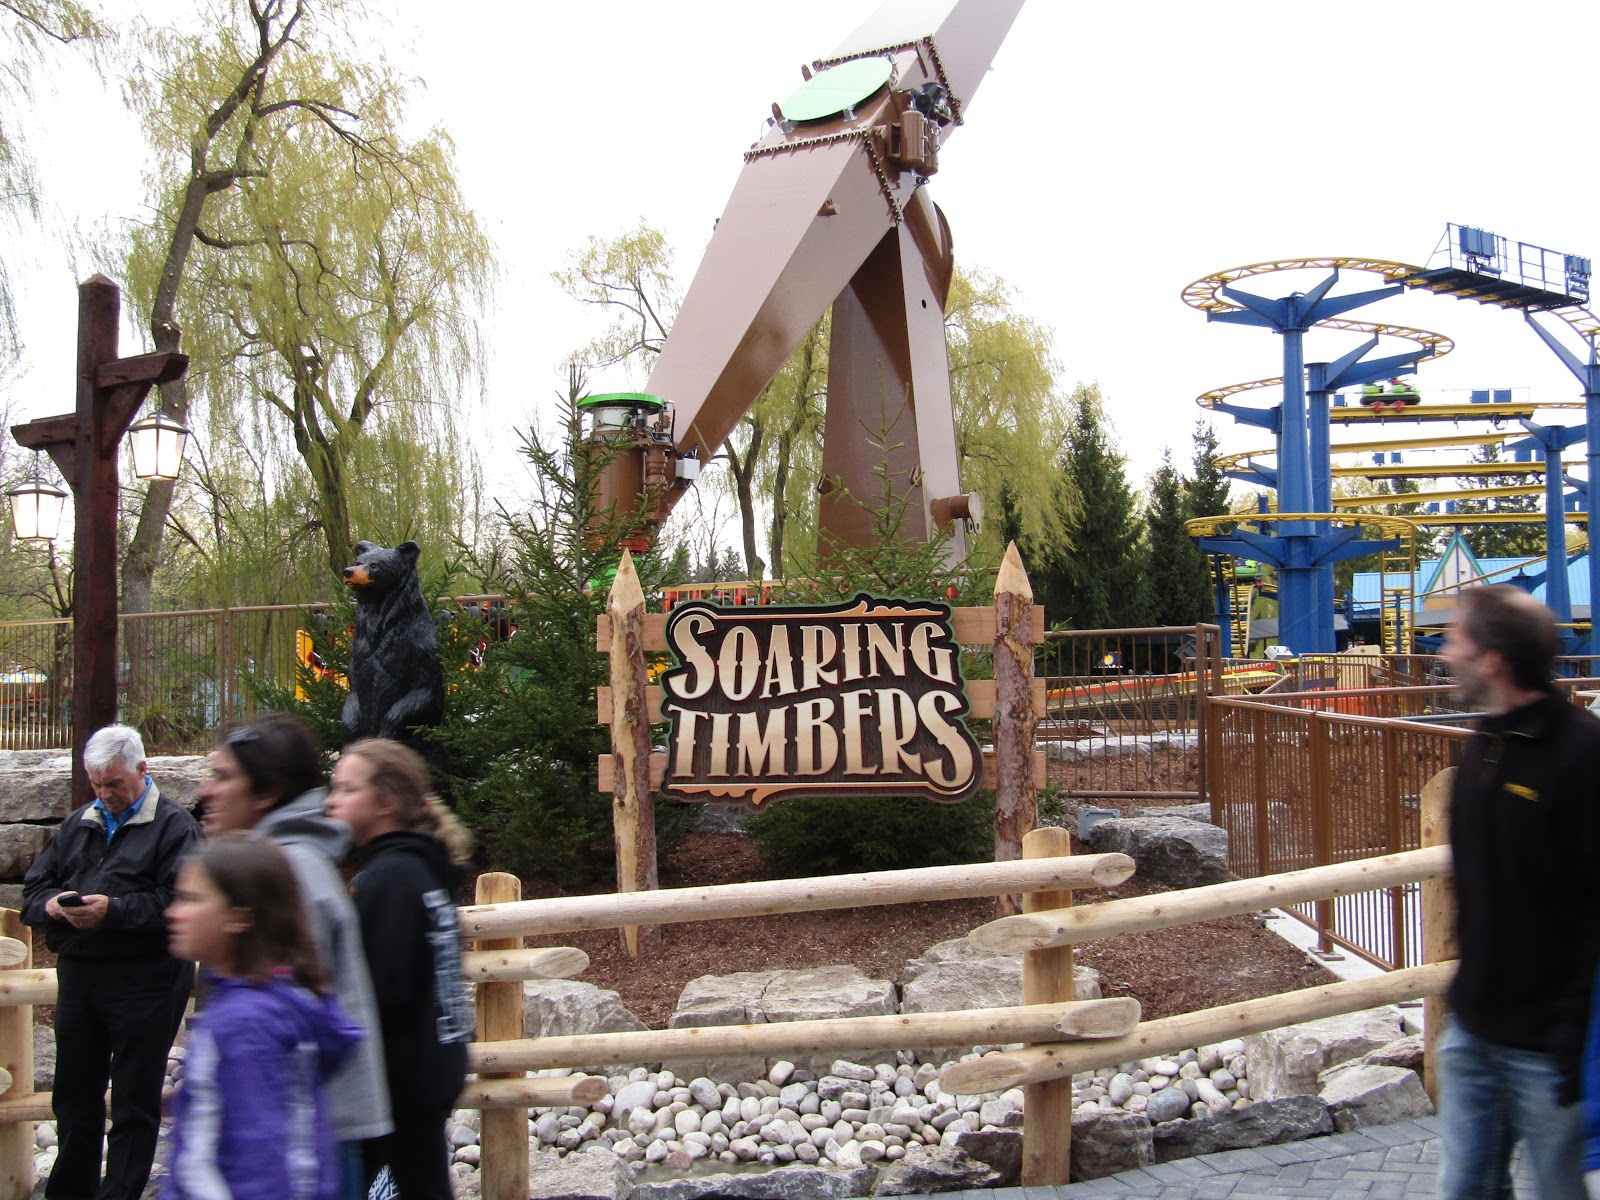 The Soaring Timbers sign supported by cedar posts. The sign is light brown in colour.